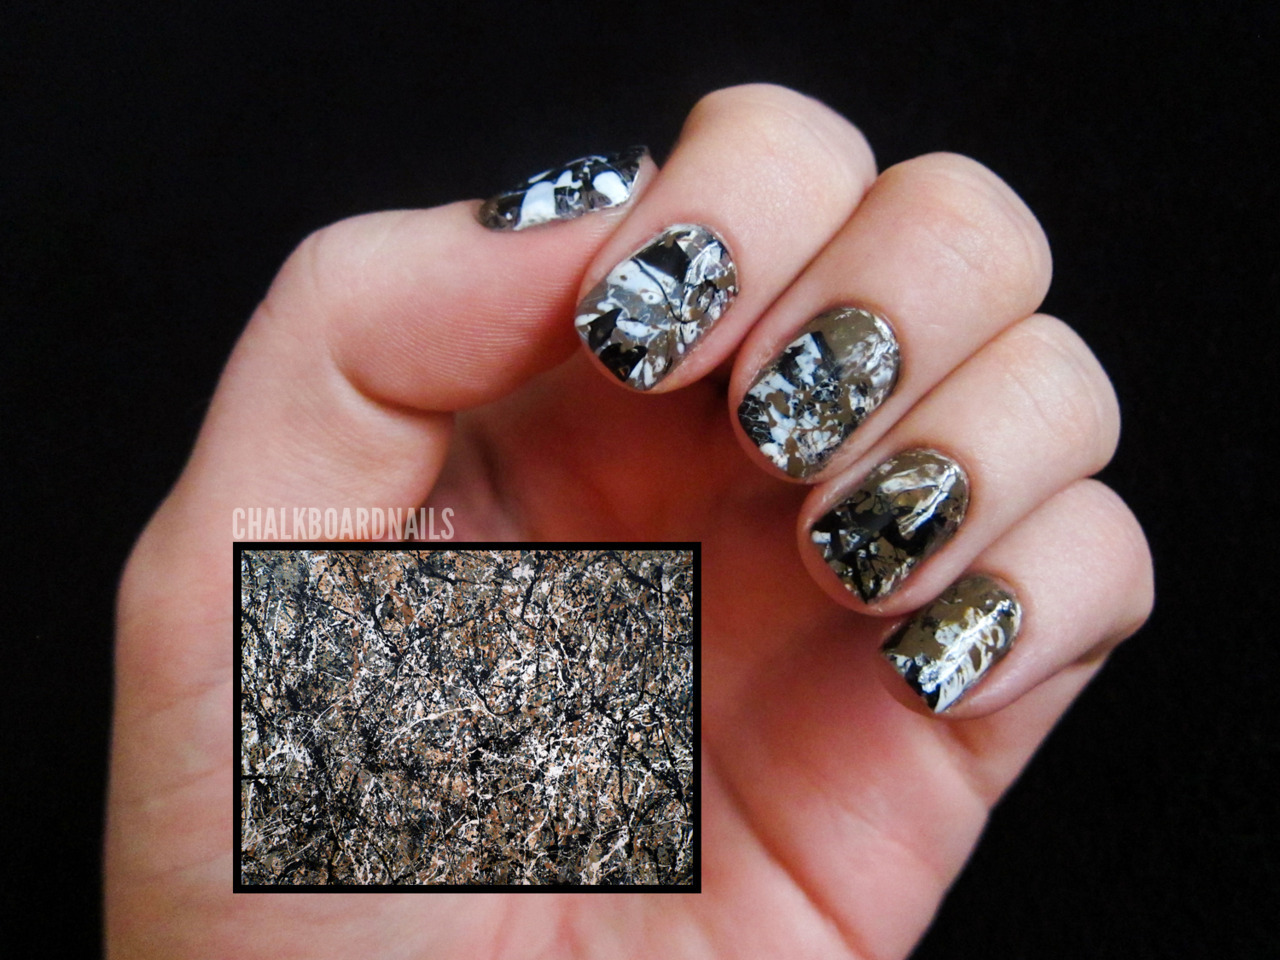 Day 27: Inspired by ArtworkJackson Pollock, One: Number 31 China Glaze RecycleChina Glaze White On WhiteWet N Wild Ink WellOPI A-Taupe the Space Needle